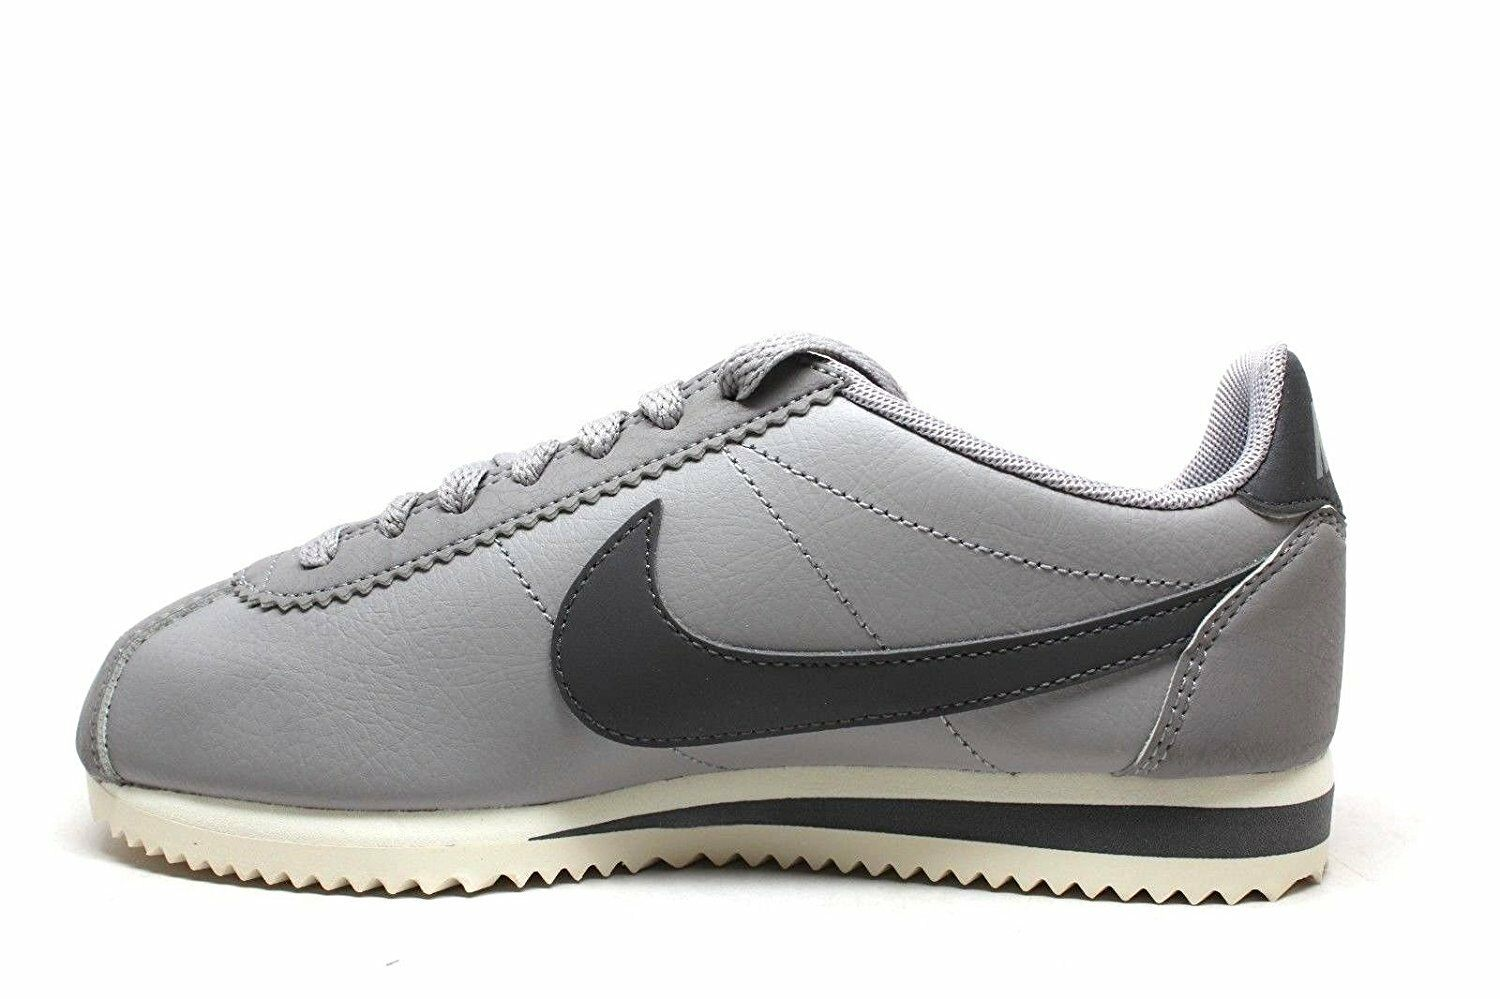 Nike Classic Cortez Leather Atmosphere Grey/Gunsmoke-Sail (WS) (807471 017) 017) 017) 627cef